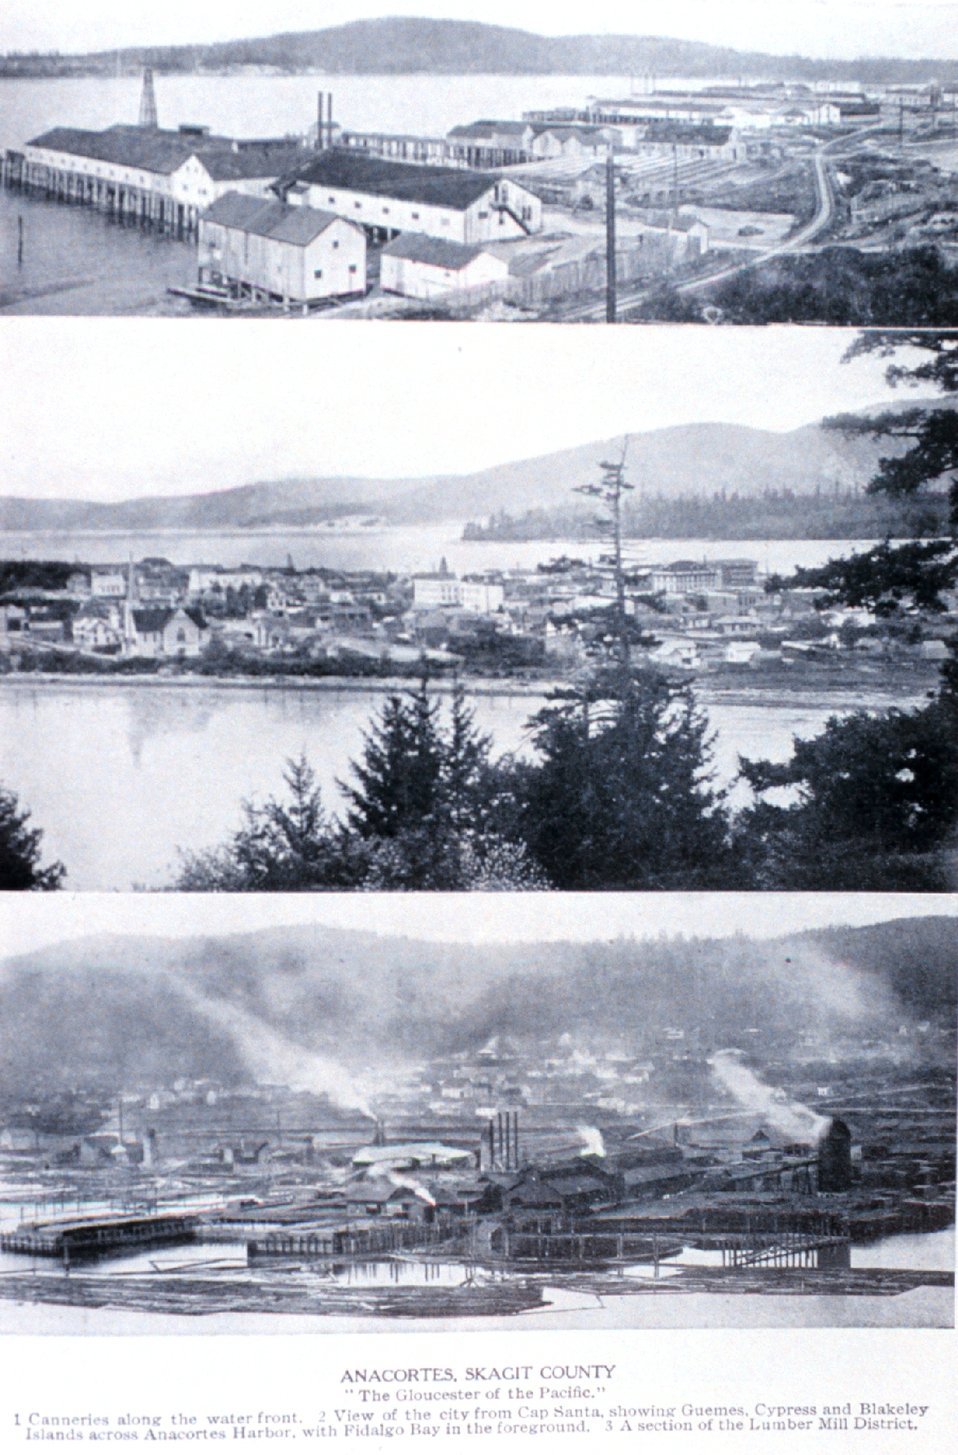 Views of 'Anacortes, Skagit County'  the 'Gloucester of the Pacific'. In:  'Puget Sound and Western Washington  Cities-Towns Scenery', by Robert A. Reid, Robert A. Reid Publisher, Seattle, 1912.  P. 109.